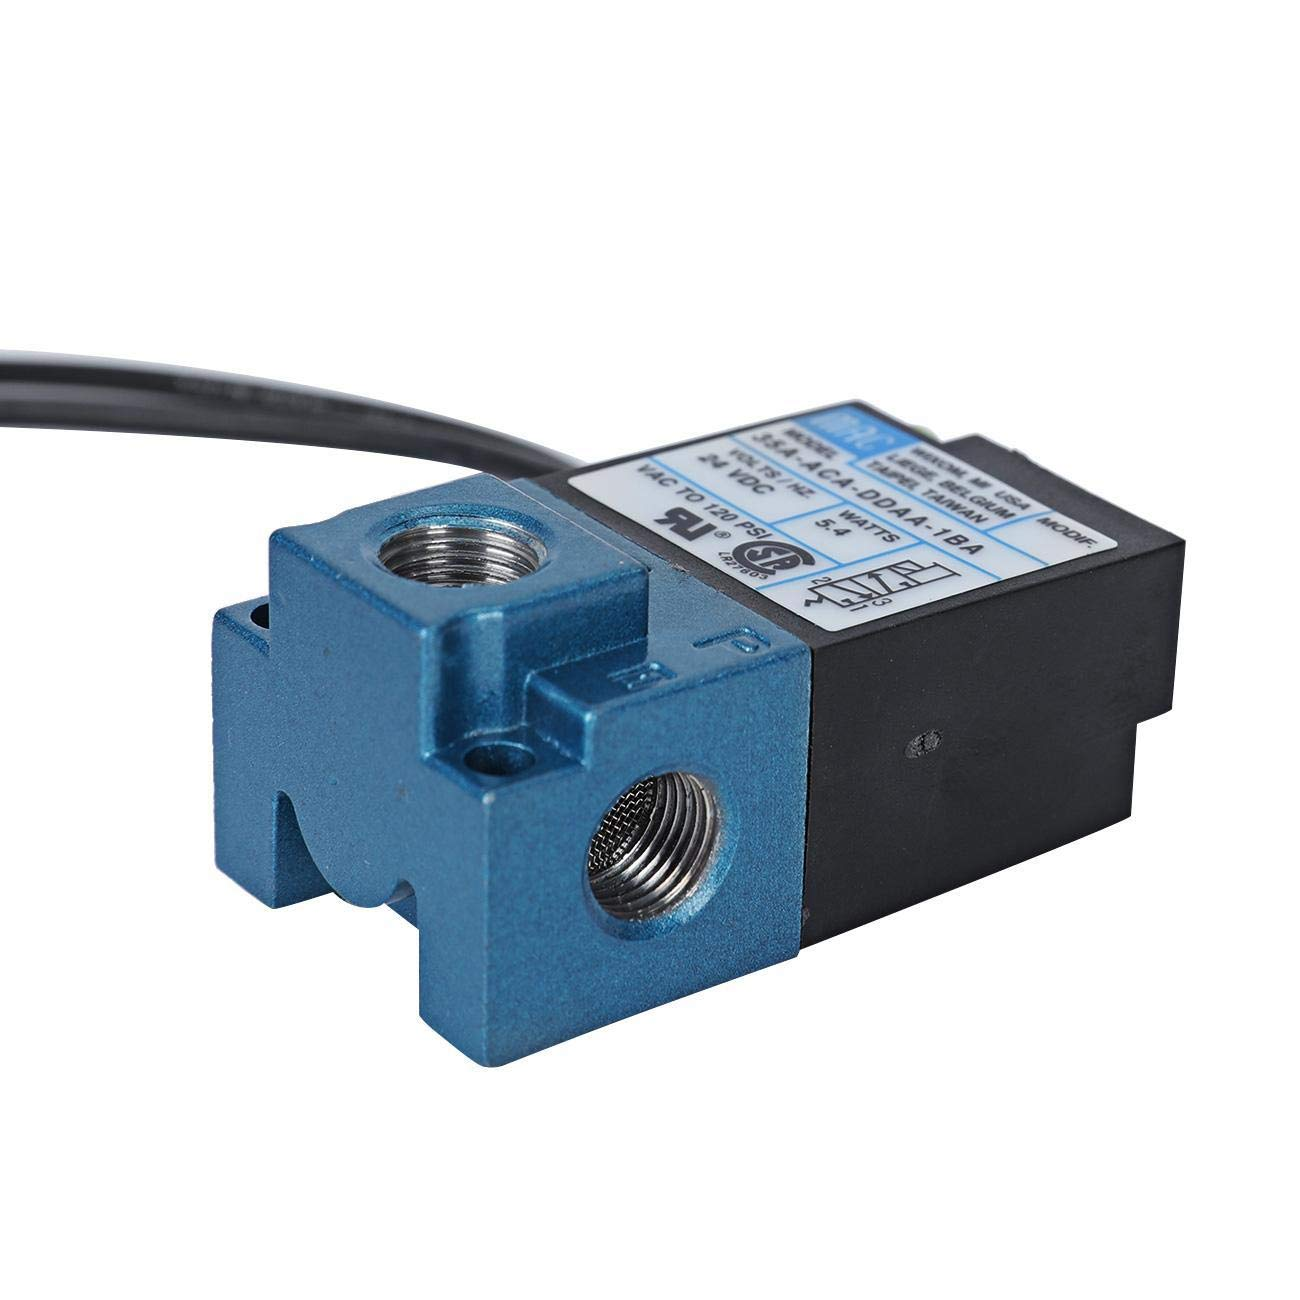 Dyna-Living Solenoid Valve 3 Port 35A-ACA-DDAA-1BA Boost Control Electric Valve High Frequency Valves Fits Marking Machine Dispensing Machine Drip Molding or Plastic Machine